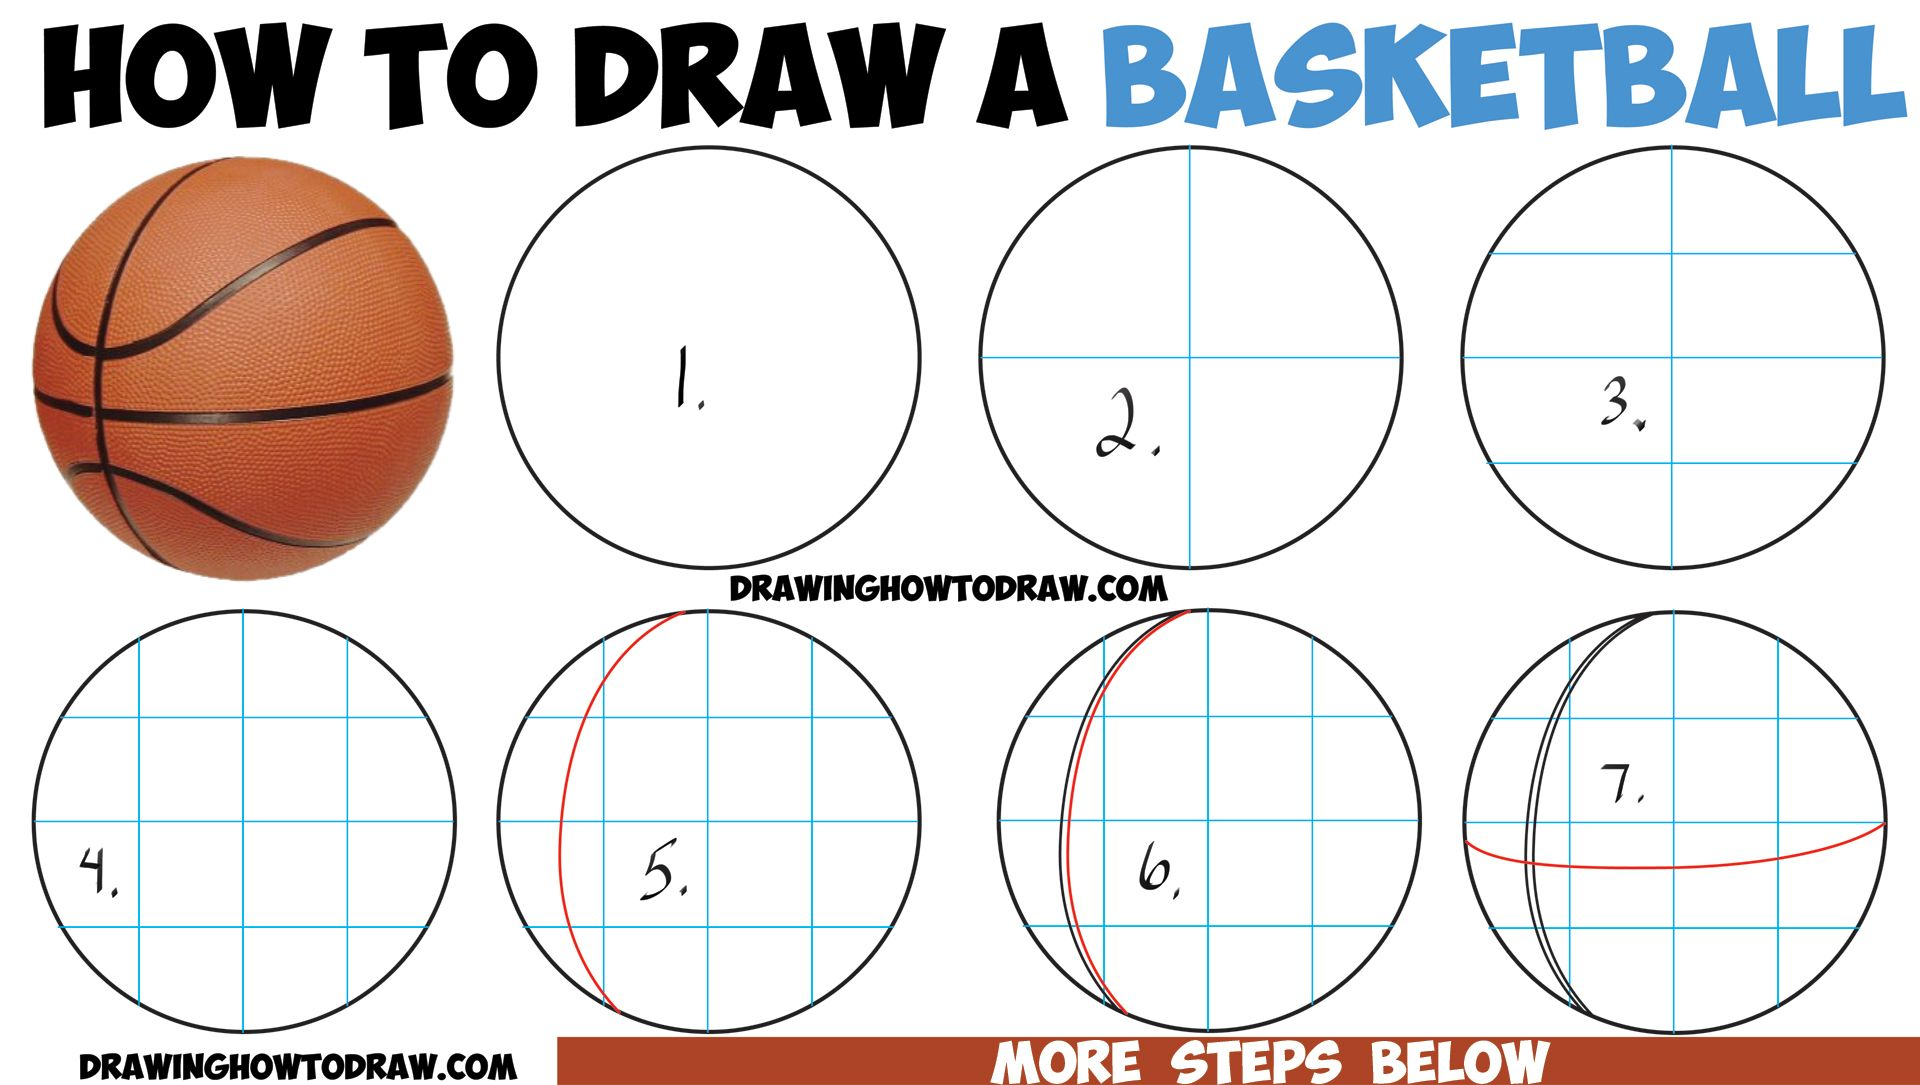 How To Draw A Basketball In Easy Step By Step Drawing Tutorial How To Draw Step By Step Drawing Tutorials Step By Step Drawing Drawing Tutorial Drawings